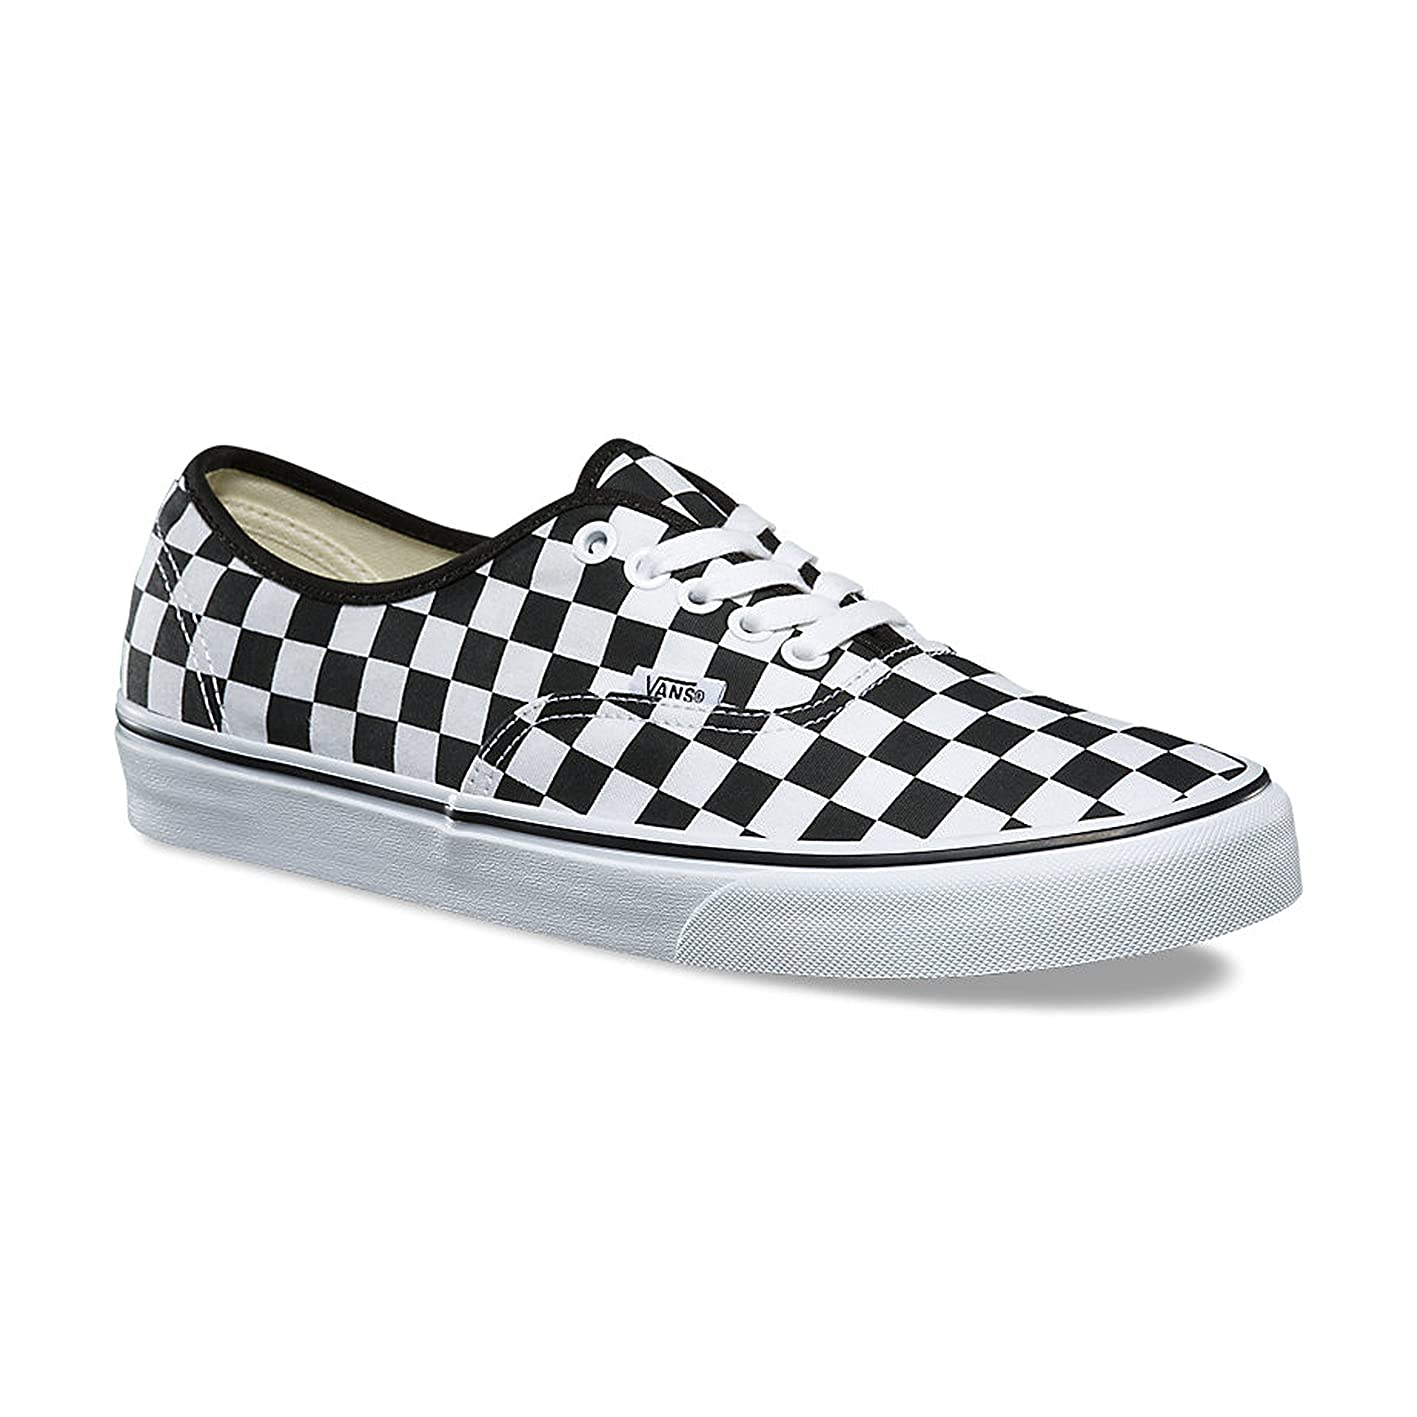 Vans U Authentic, Unisex Adults' Sneakers pgevvdqissw015